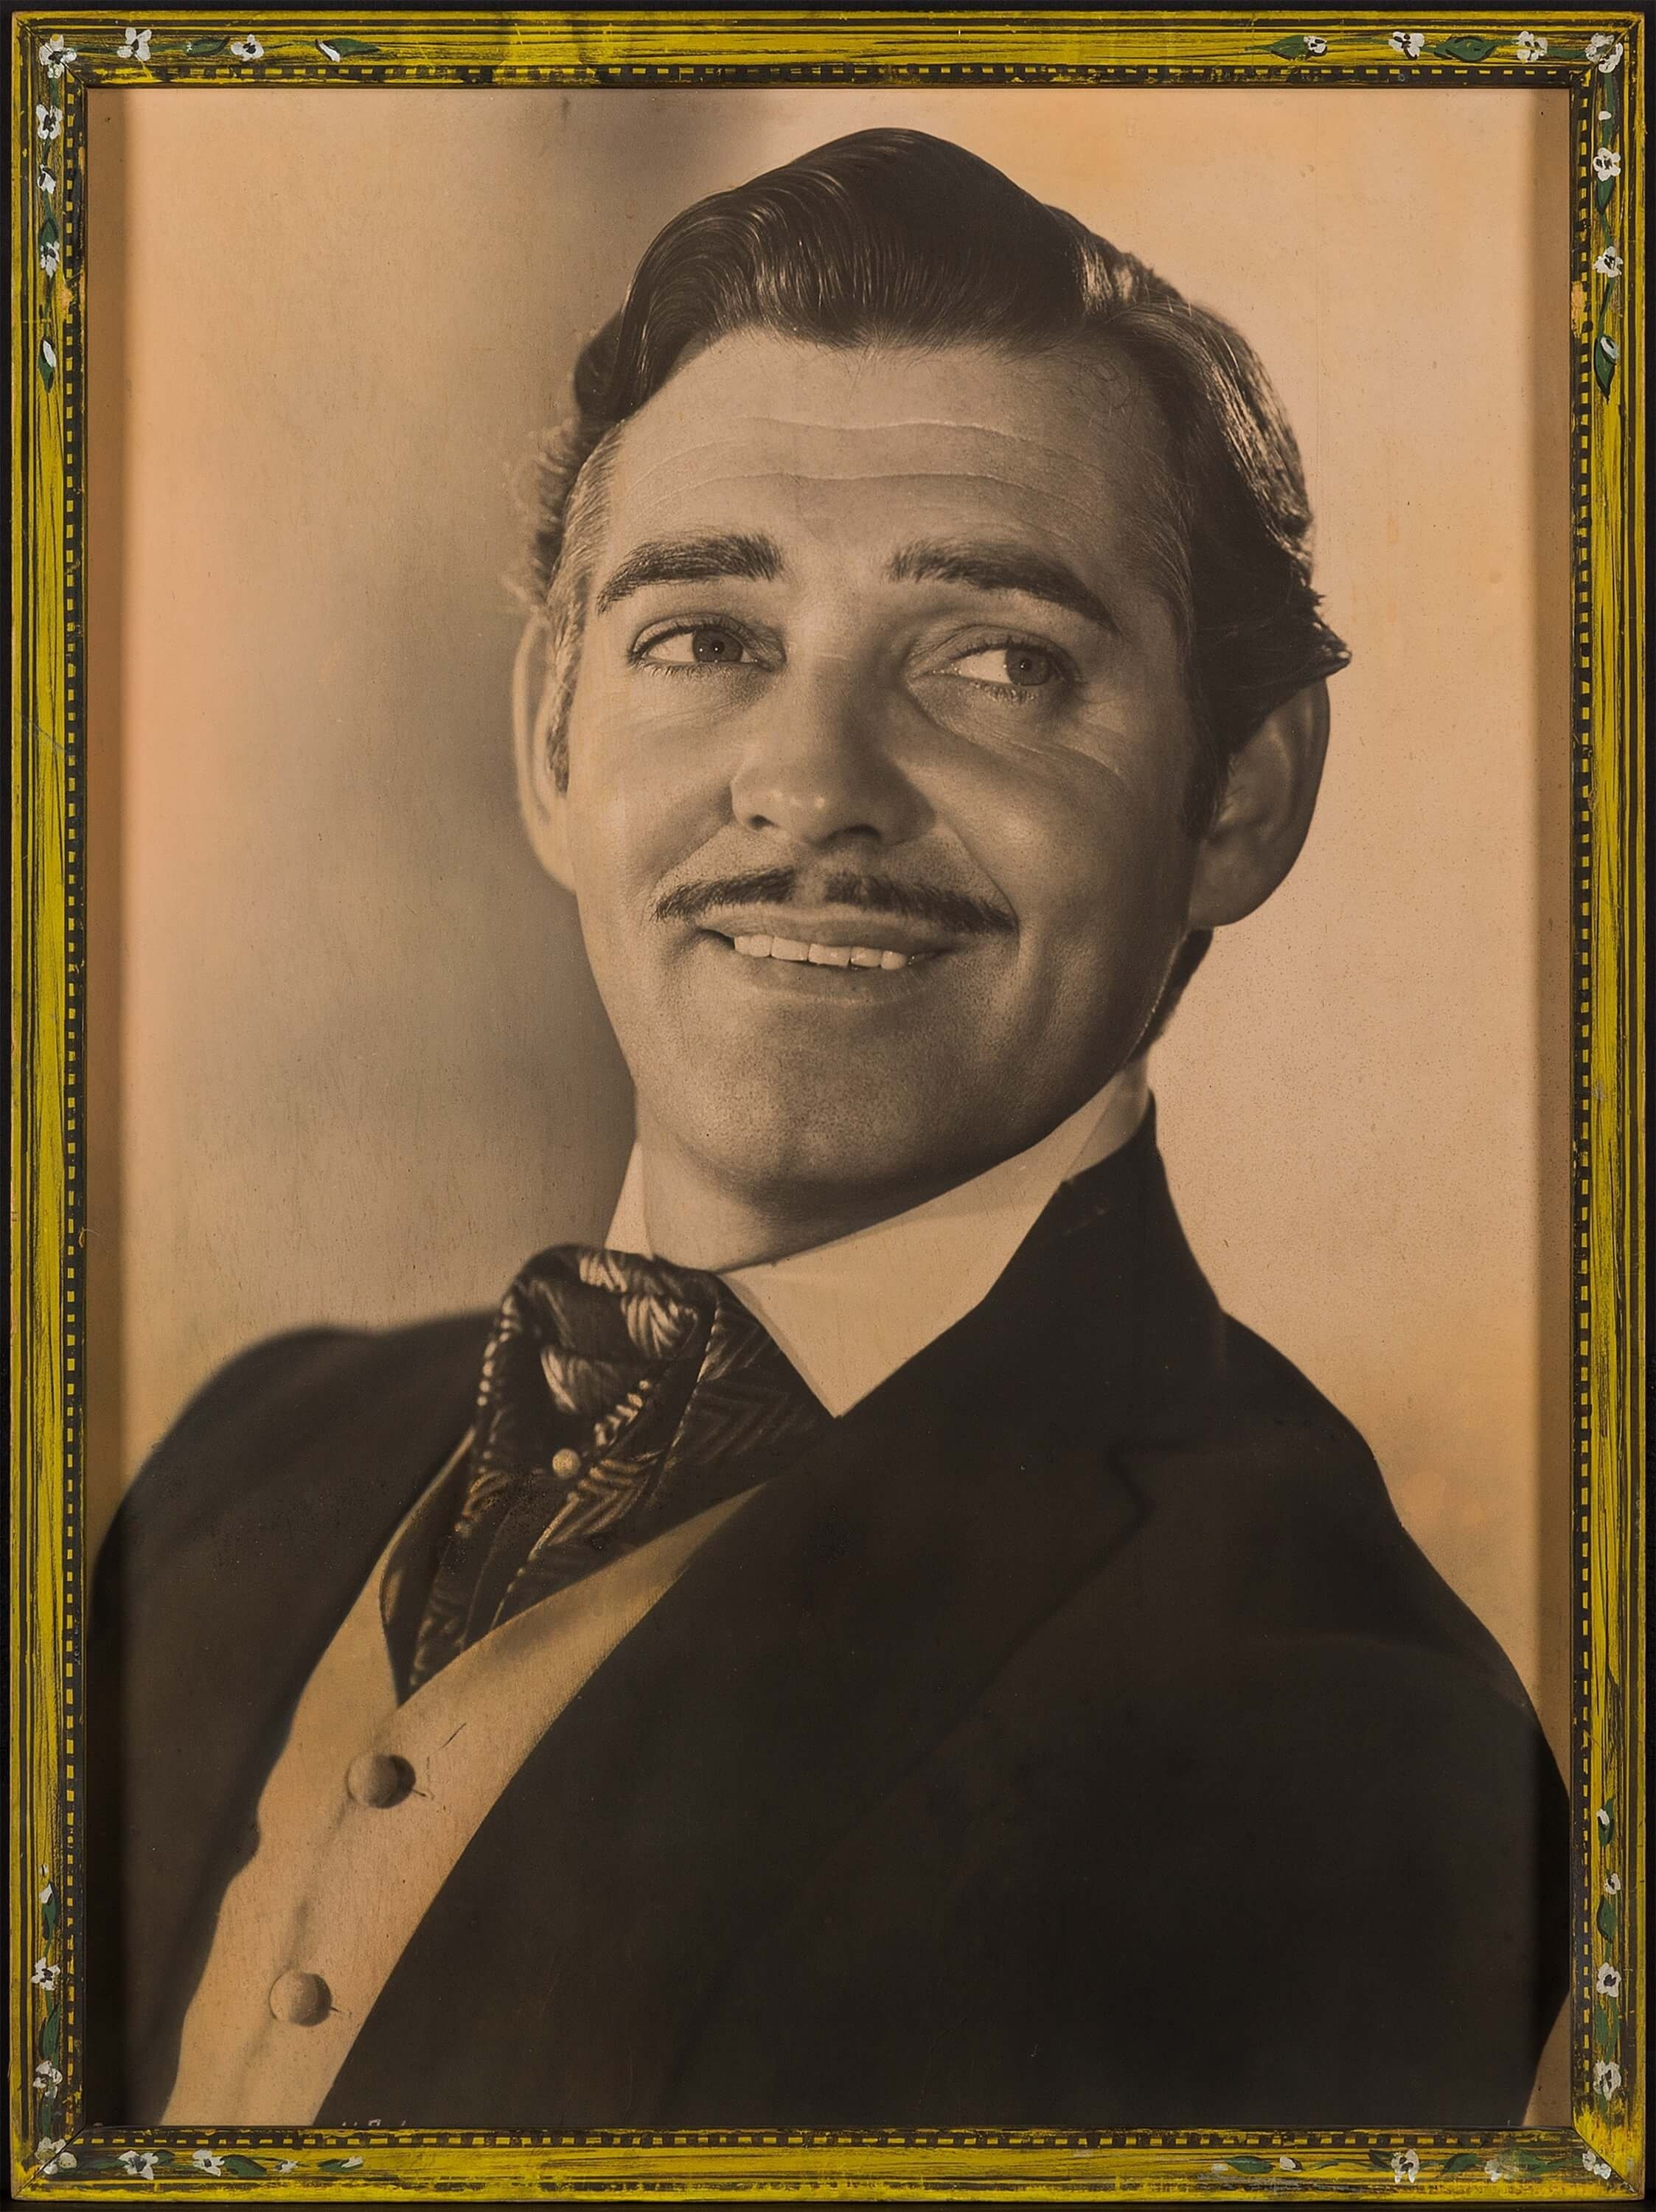 Lot 1059 - A Clark Gable oversized lobby portrait for Gone with the Wind